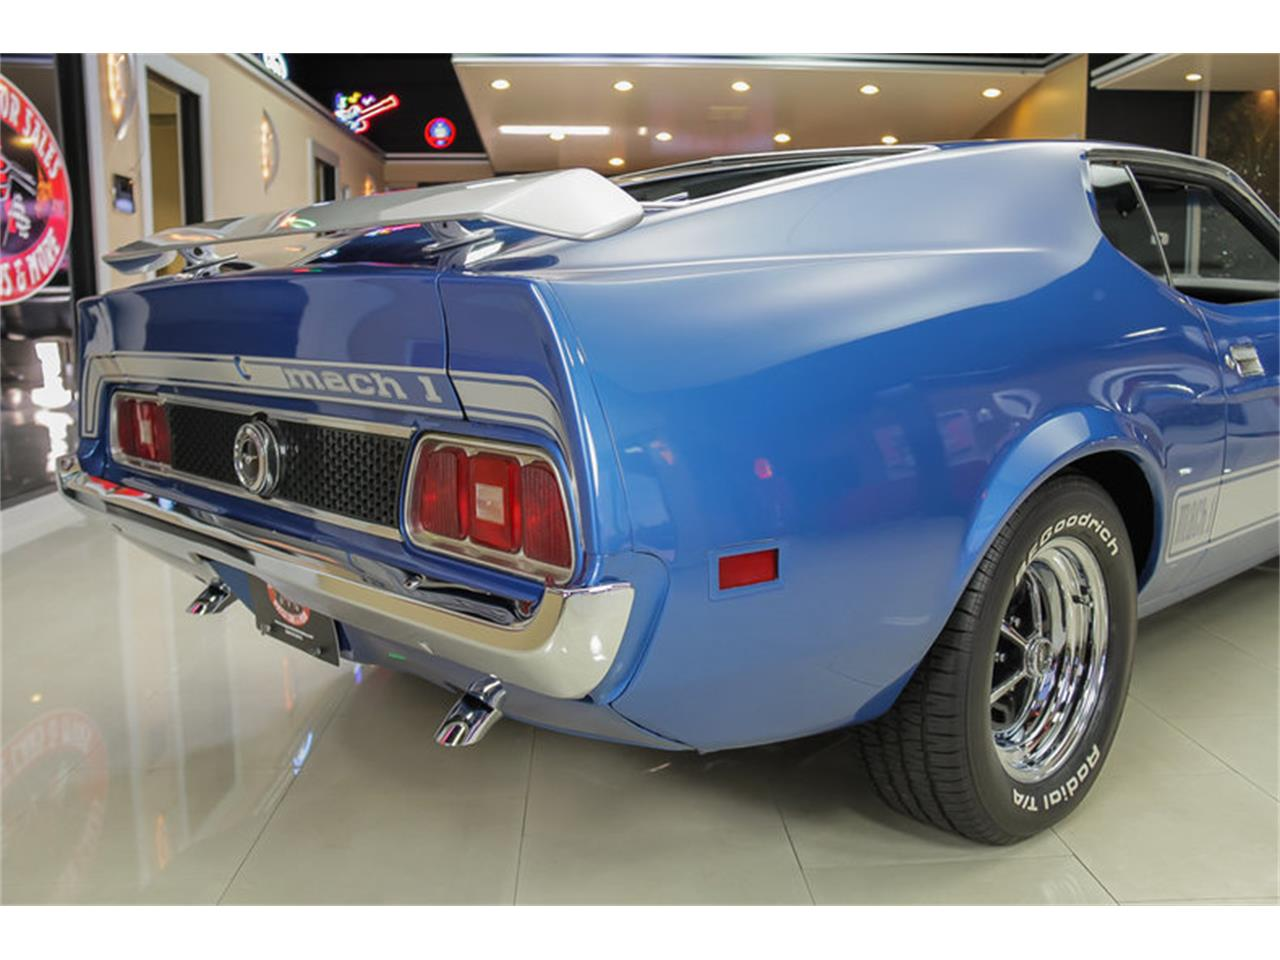 Large Picture of '73 Ford Mustang Mach 1 Q Code located in Michigan Offered by Vanguard Motor Sales - JDX1